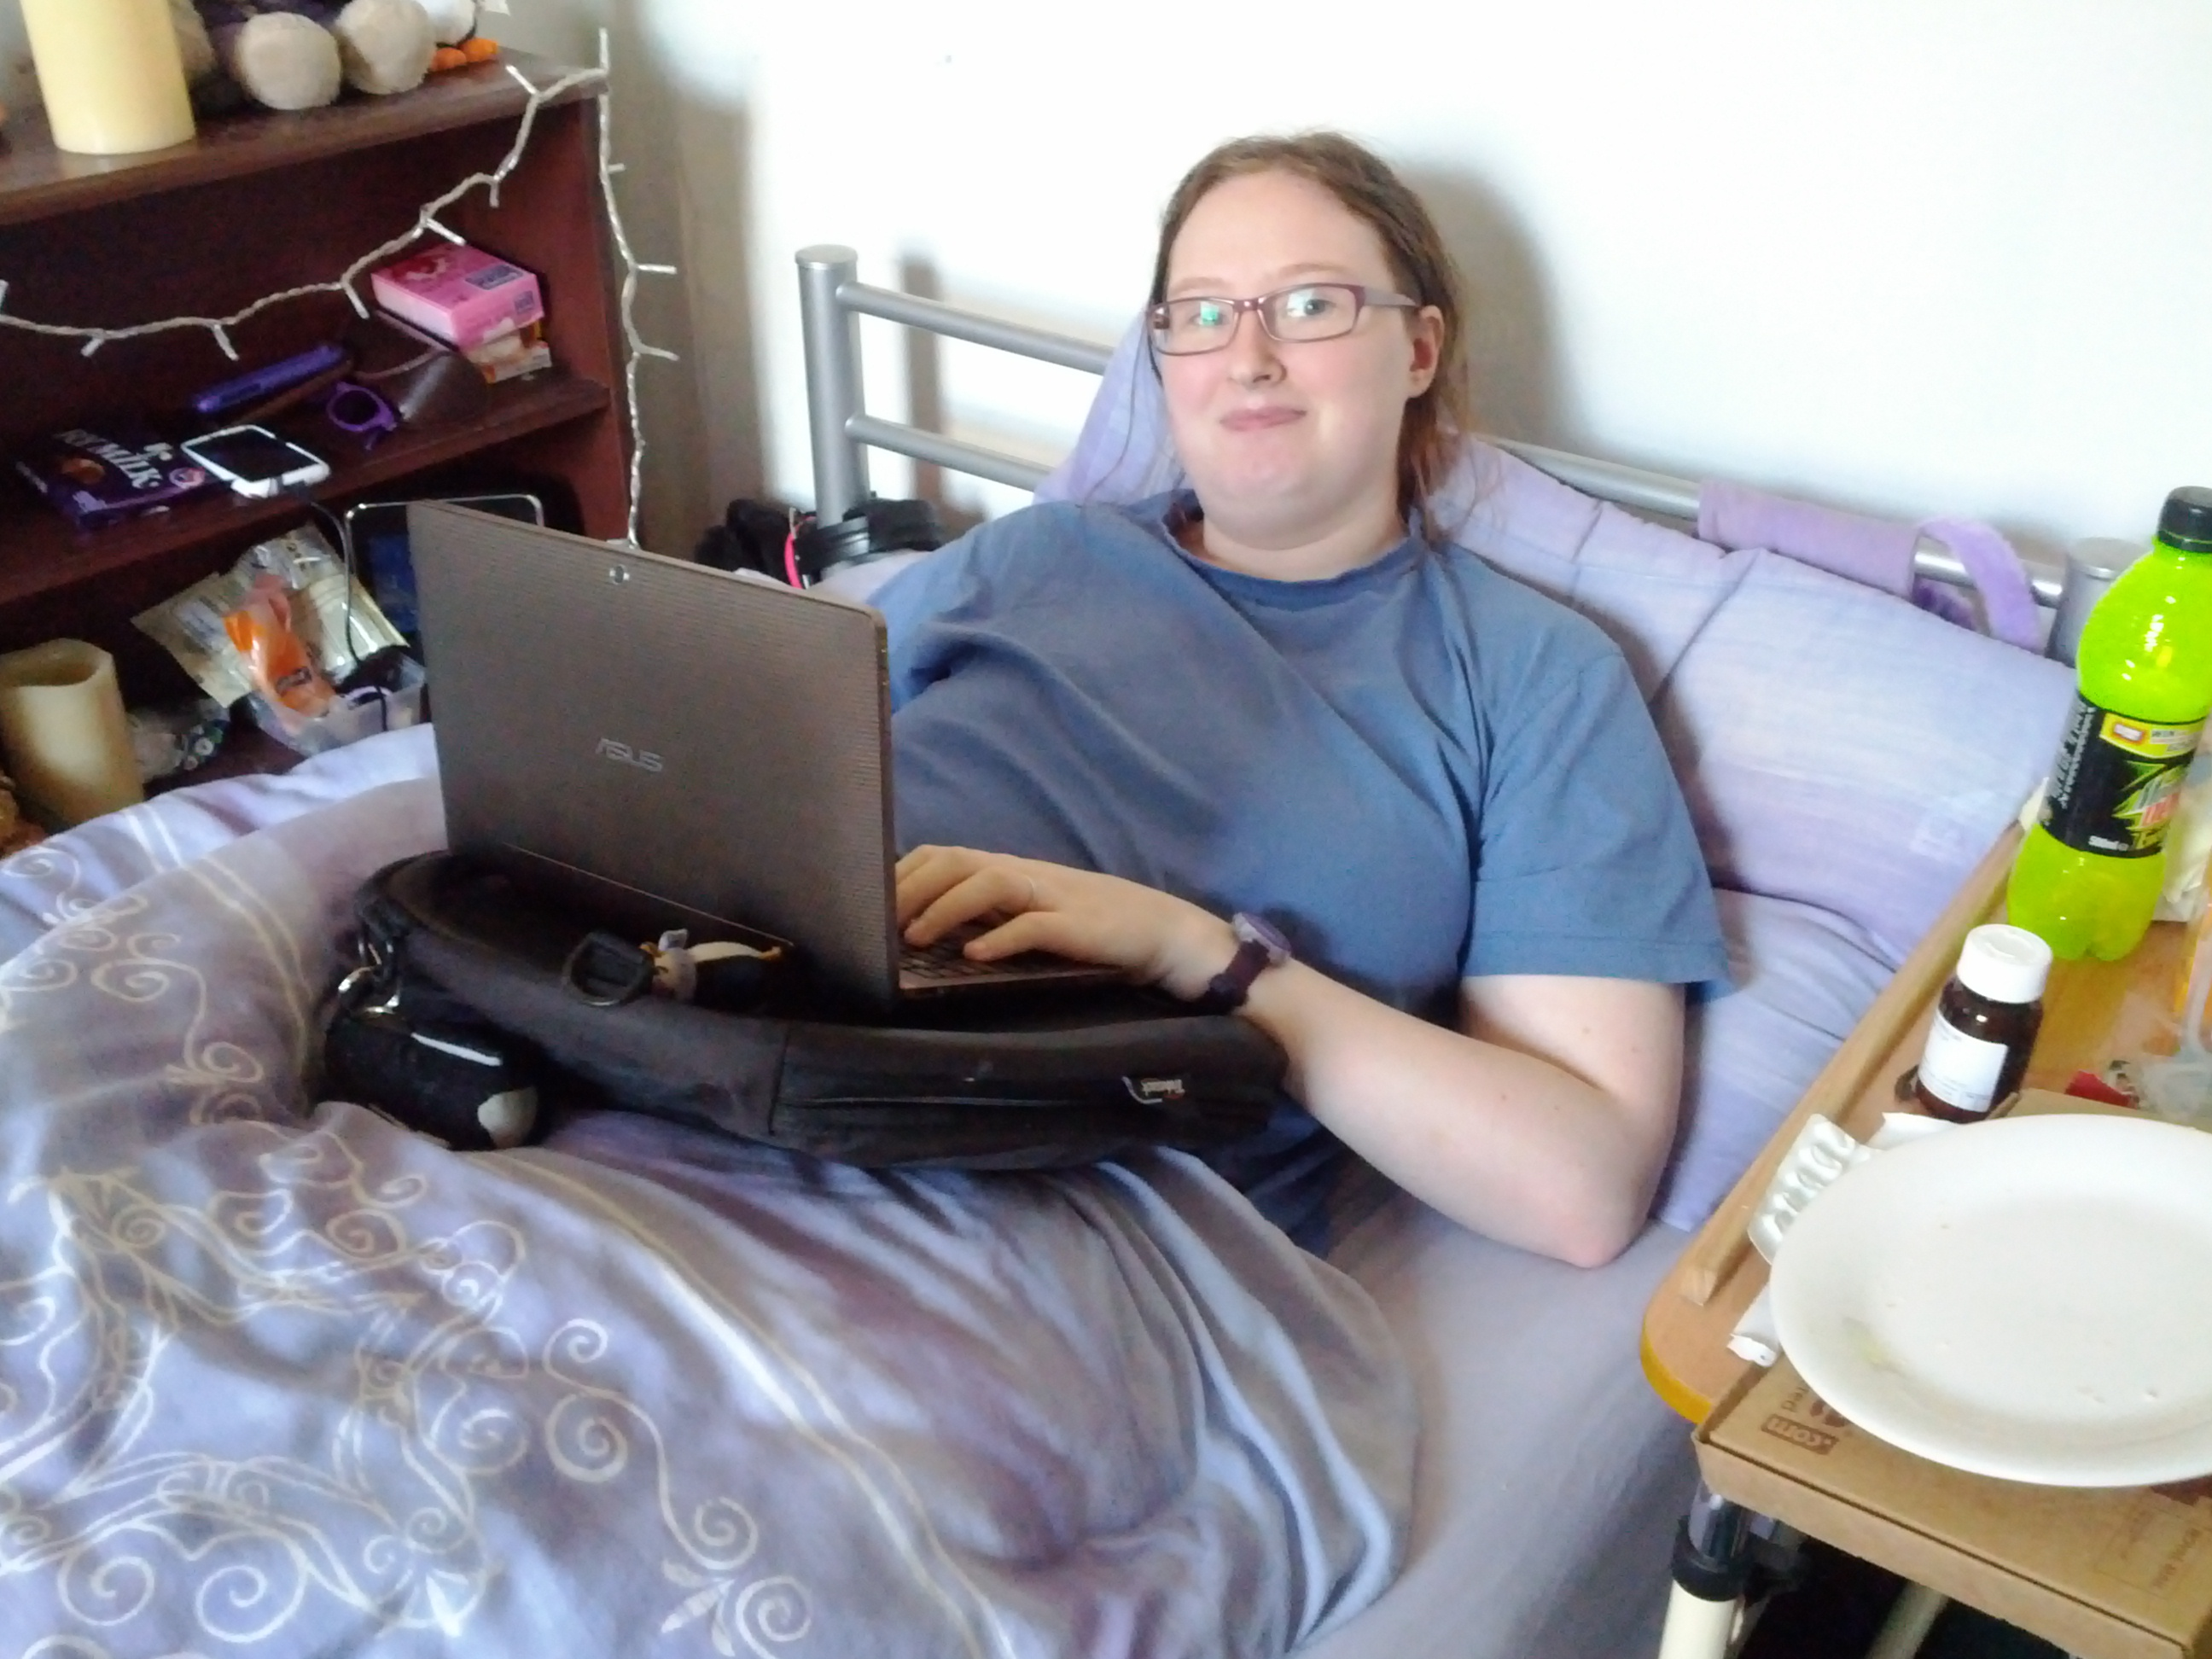 Danni in bed using a laptop on her trabasack